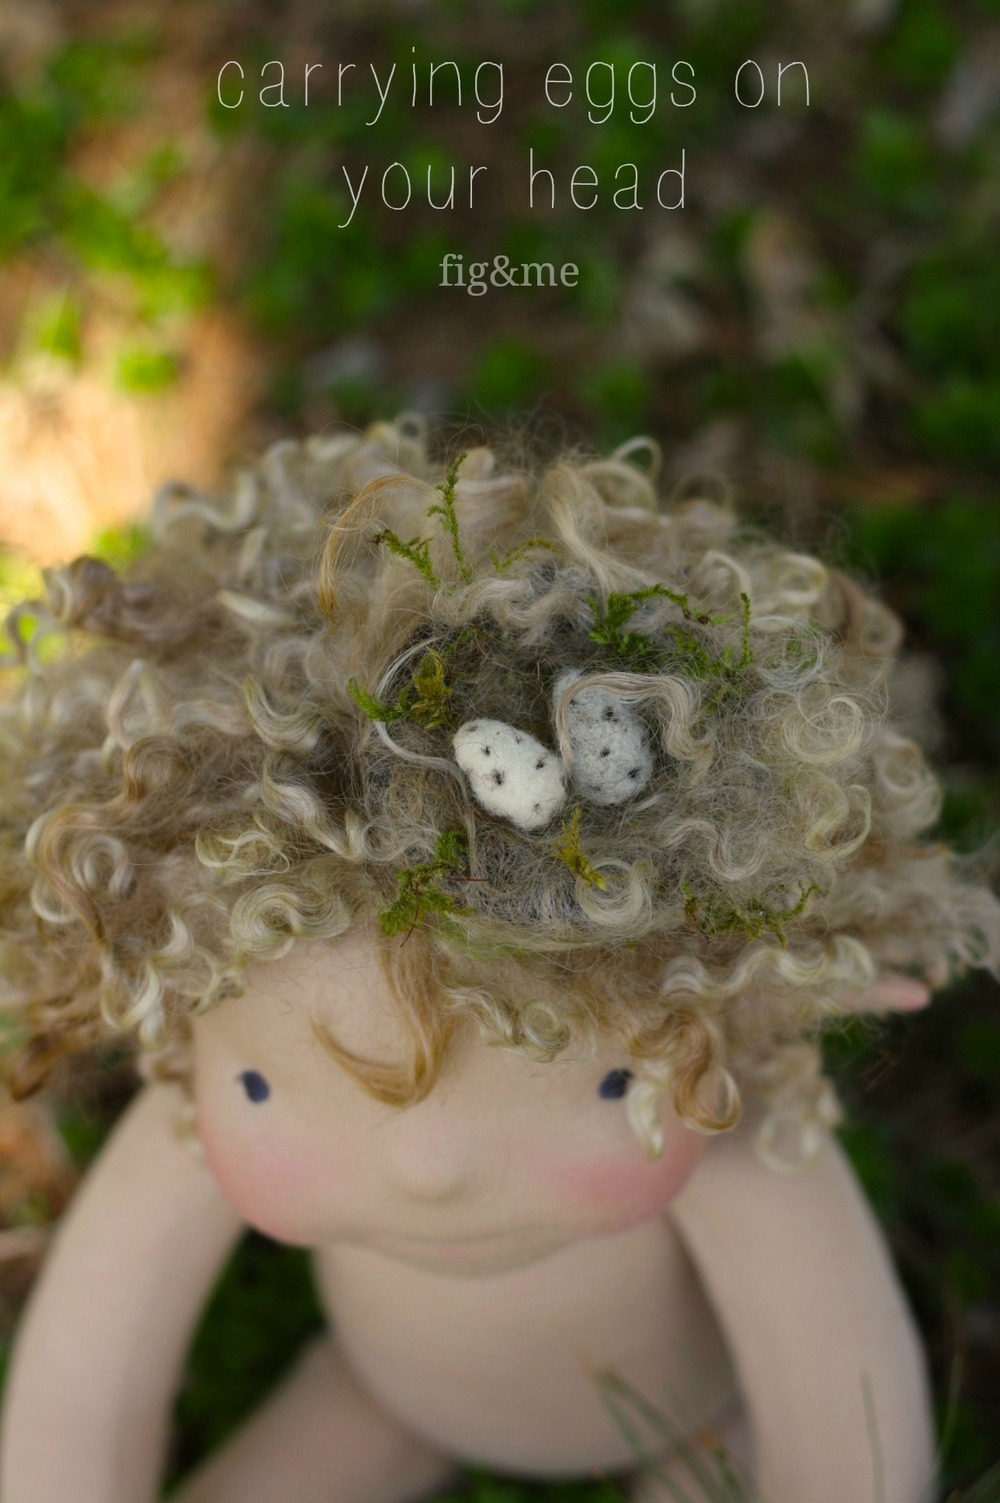 Nest full of eggs, by Fig&me